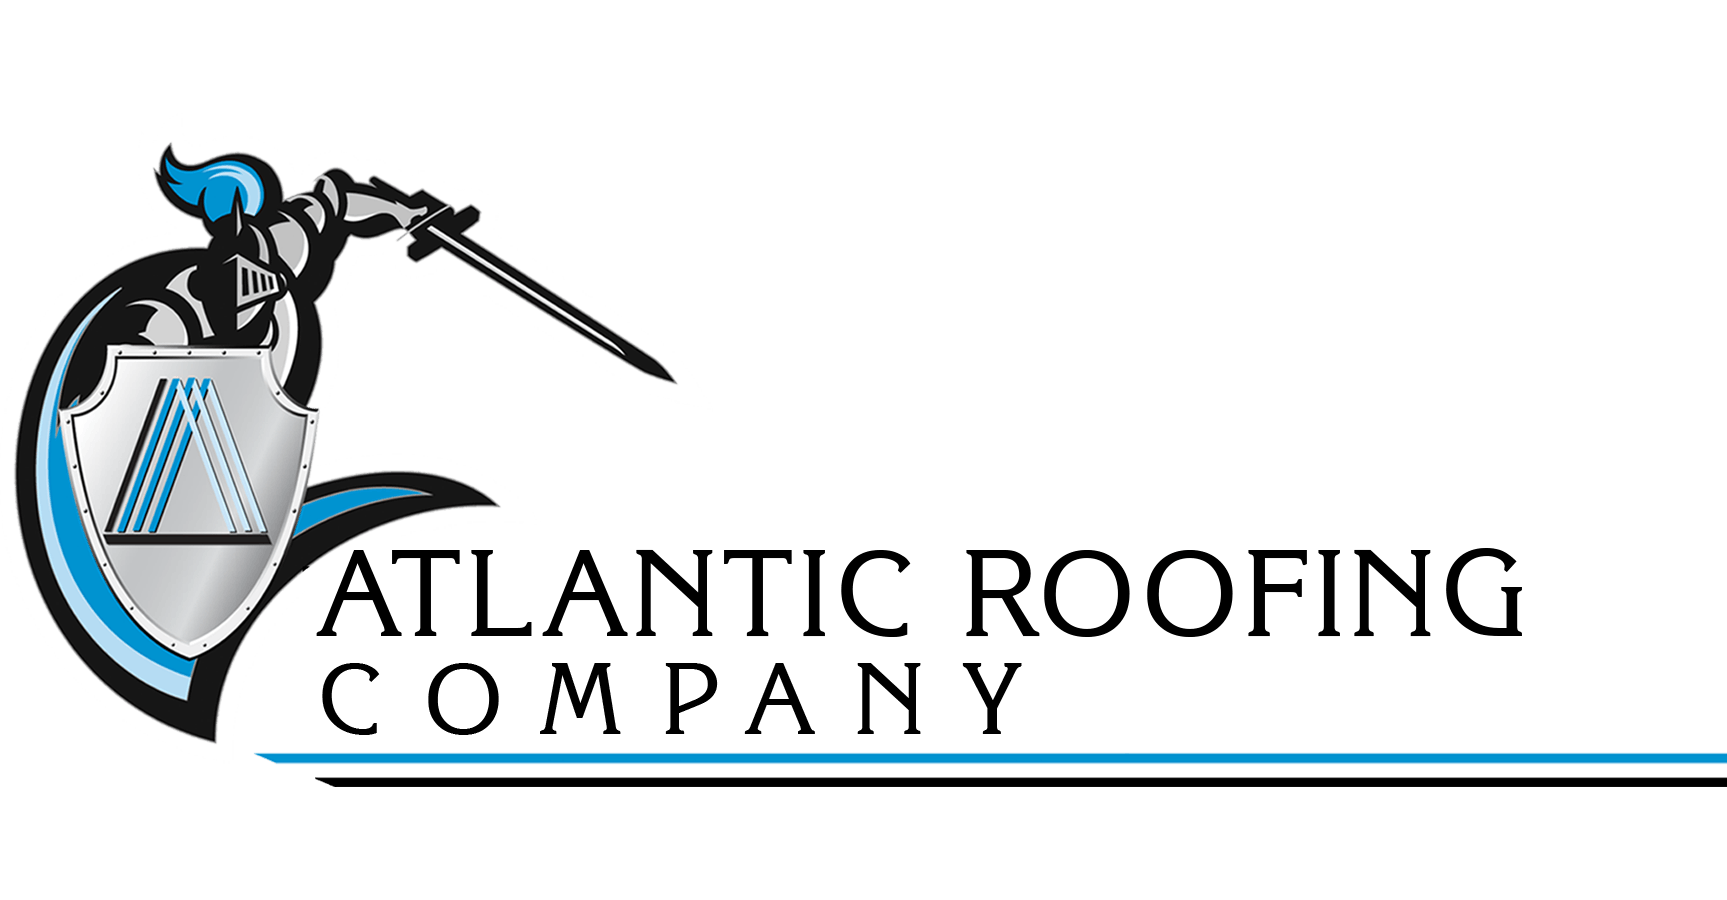 Metal Roofing Jacksonville NC, Metal Roofing | Metal Roofing Fayetteville, Goldsboro, Wallace, Burgaw Atlantic Roofing Company